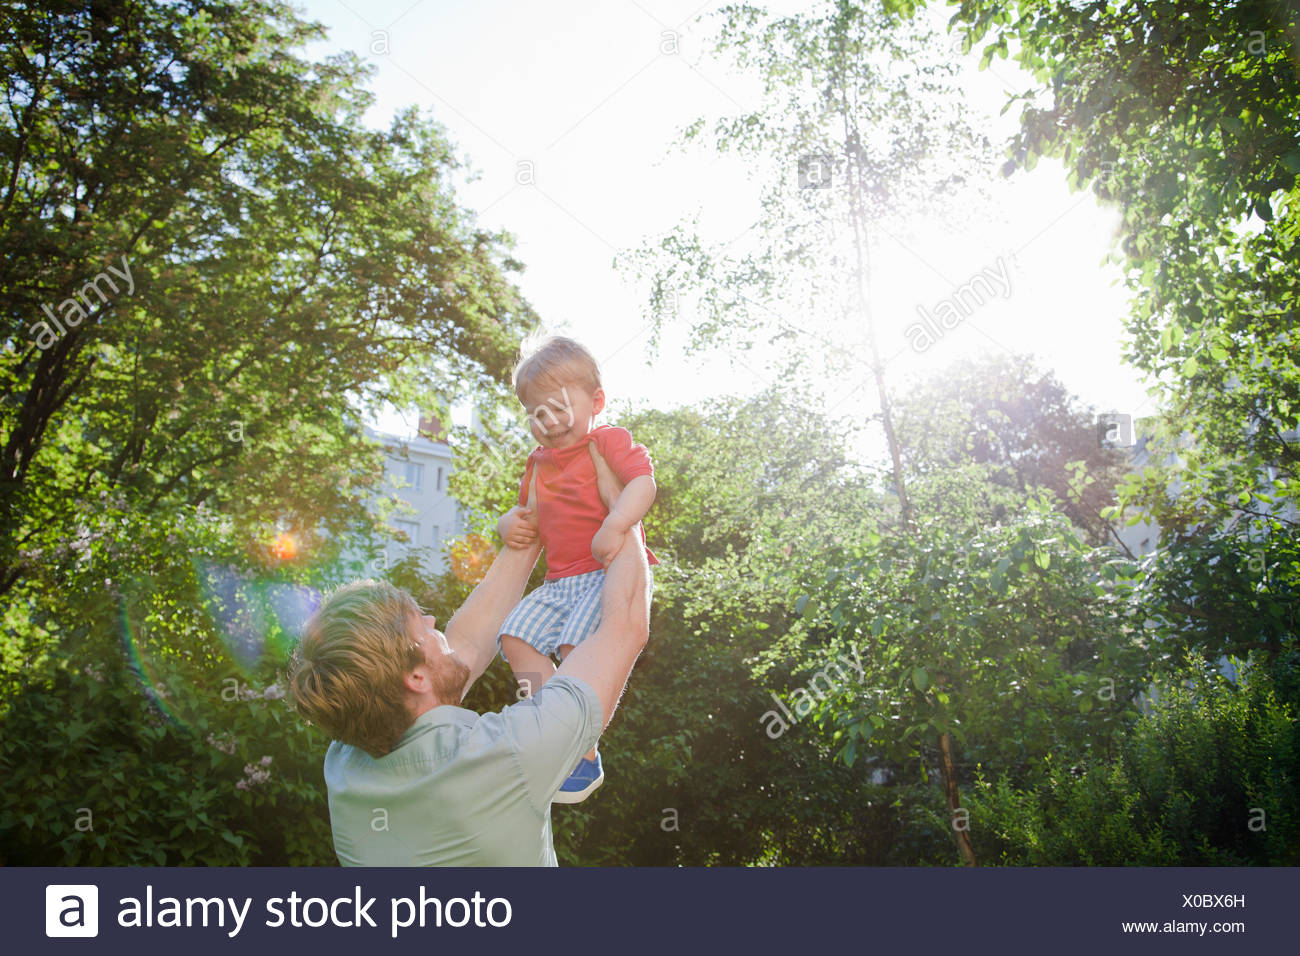 Father holding up toddler son in park - Stock Image